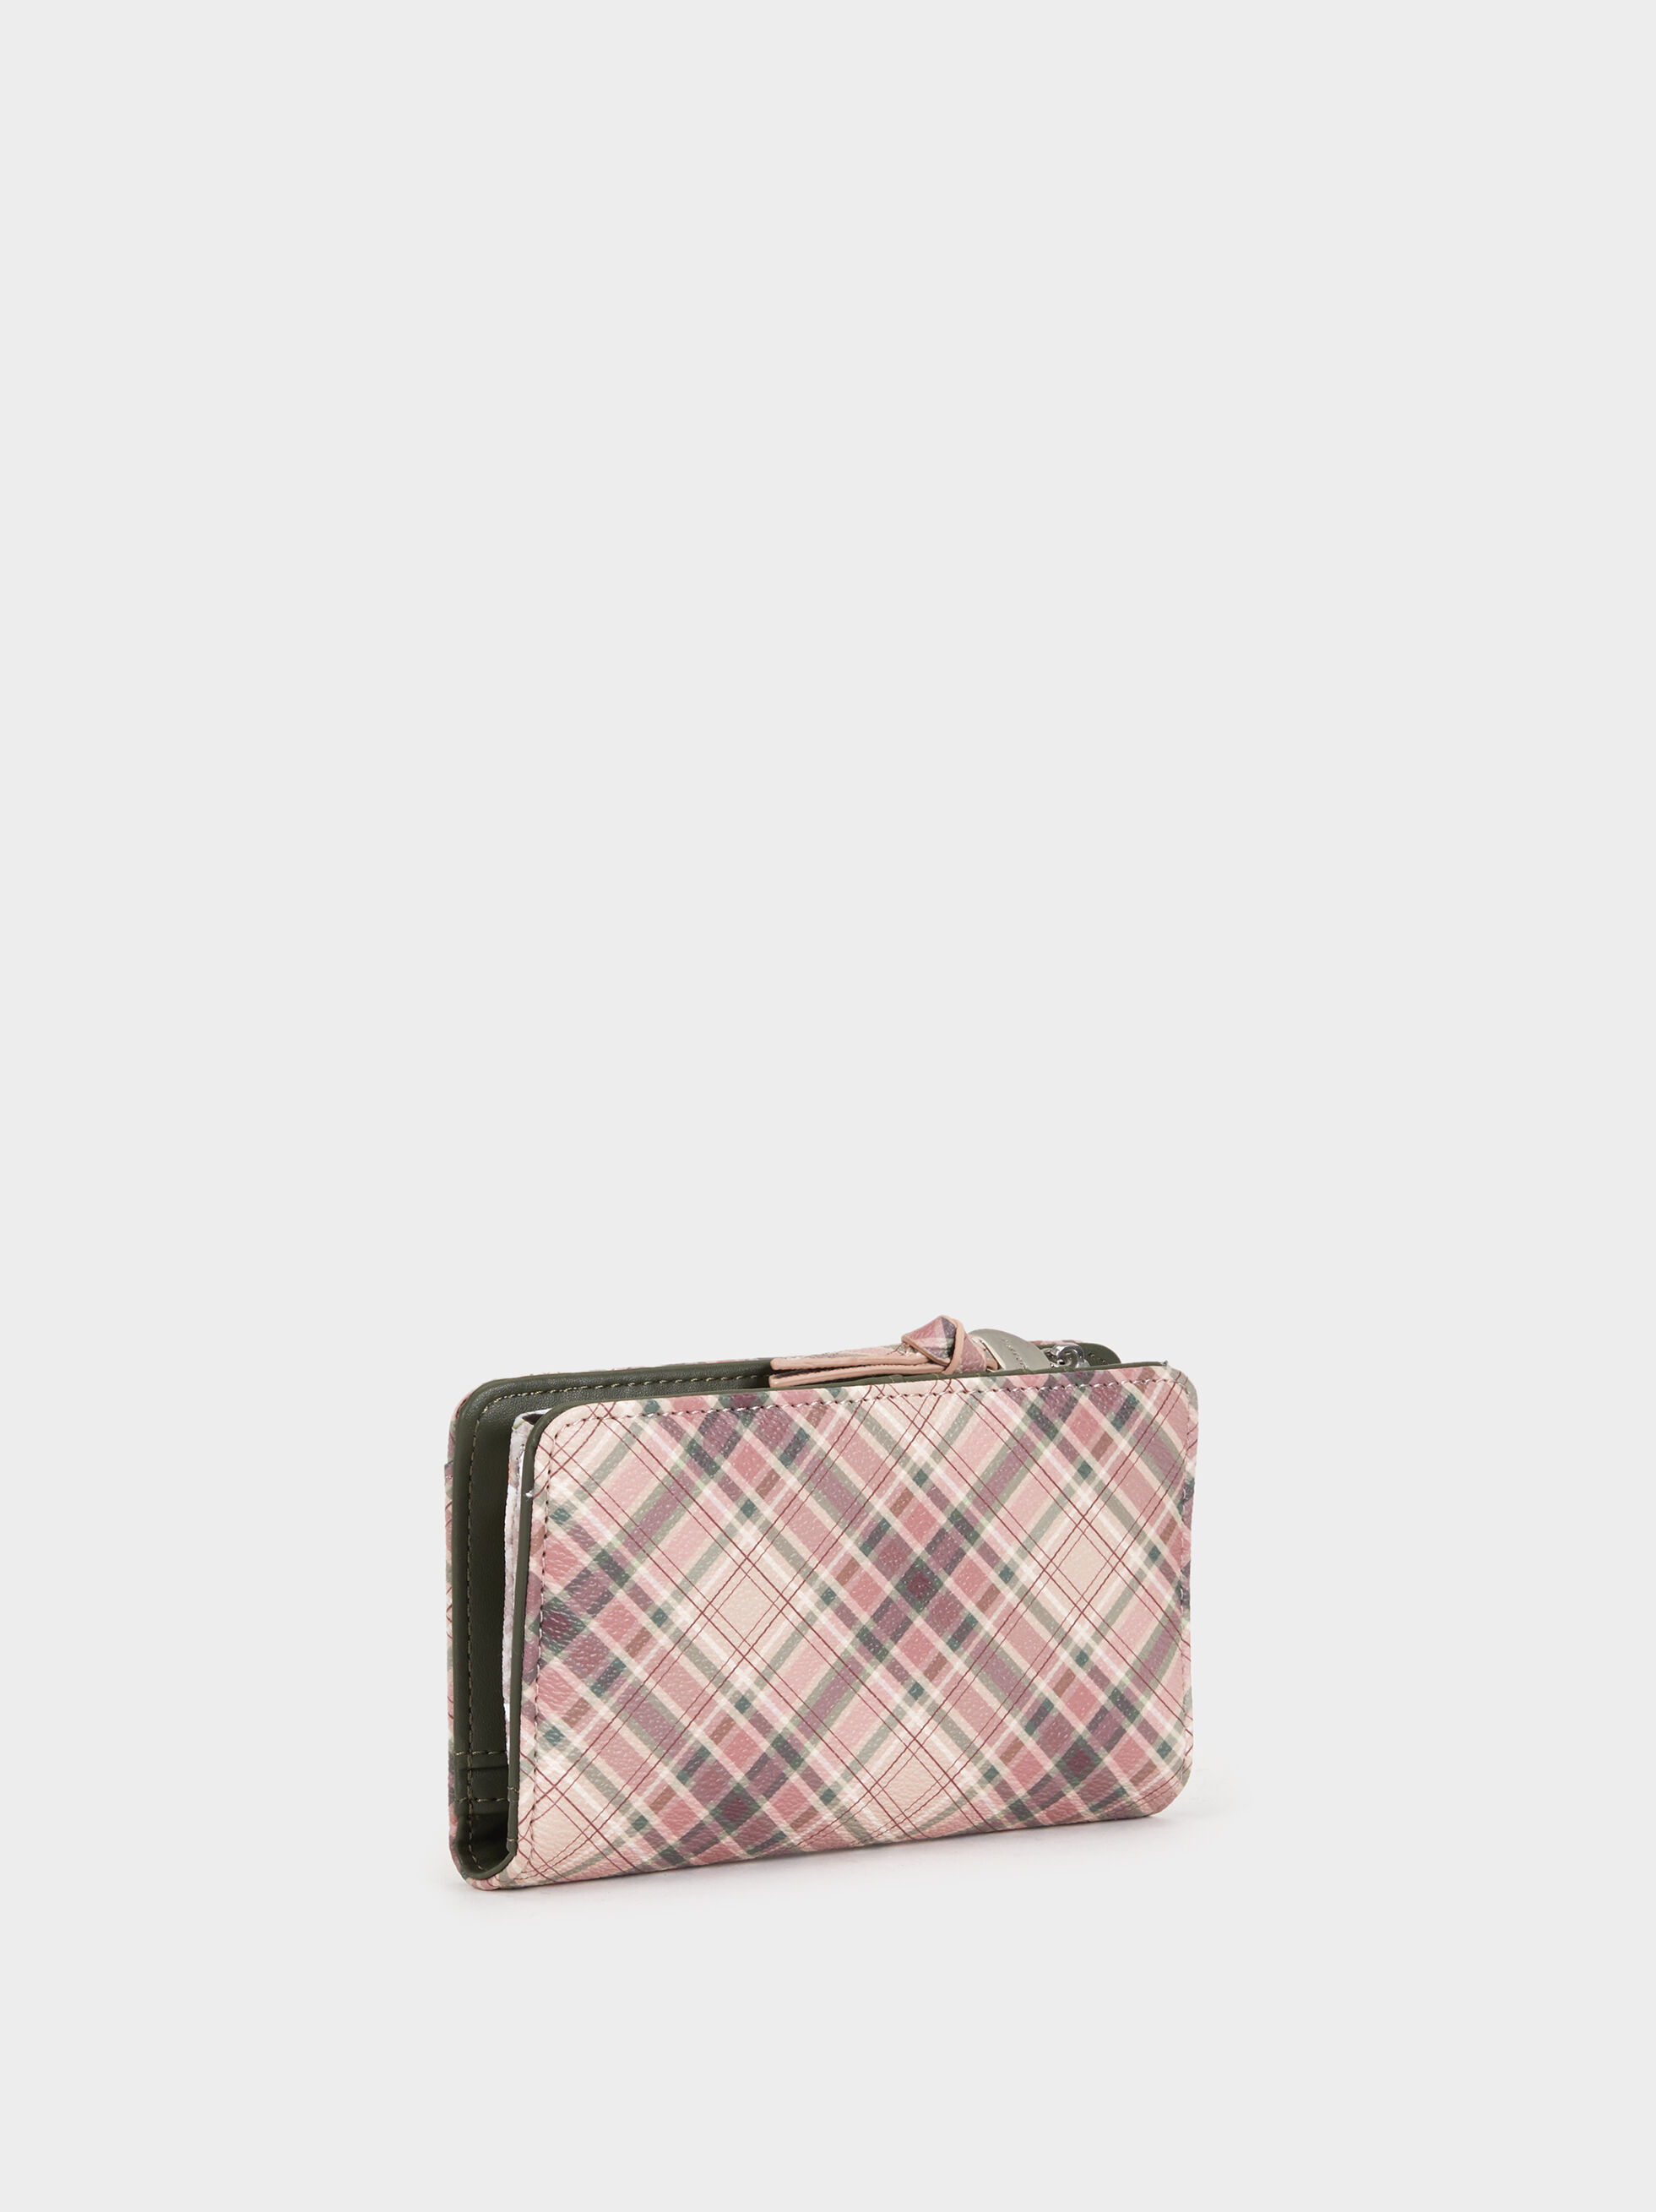 Medium Check Print Wallet, Pink, hi-res